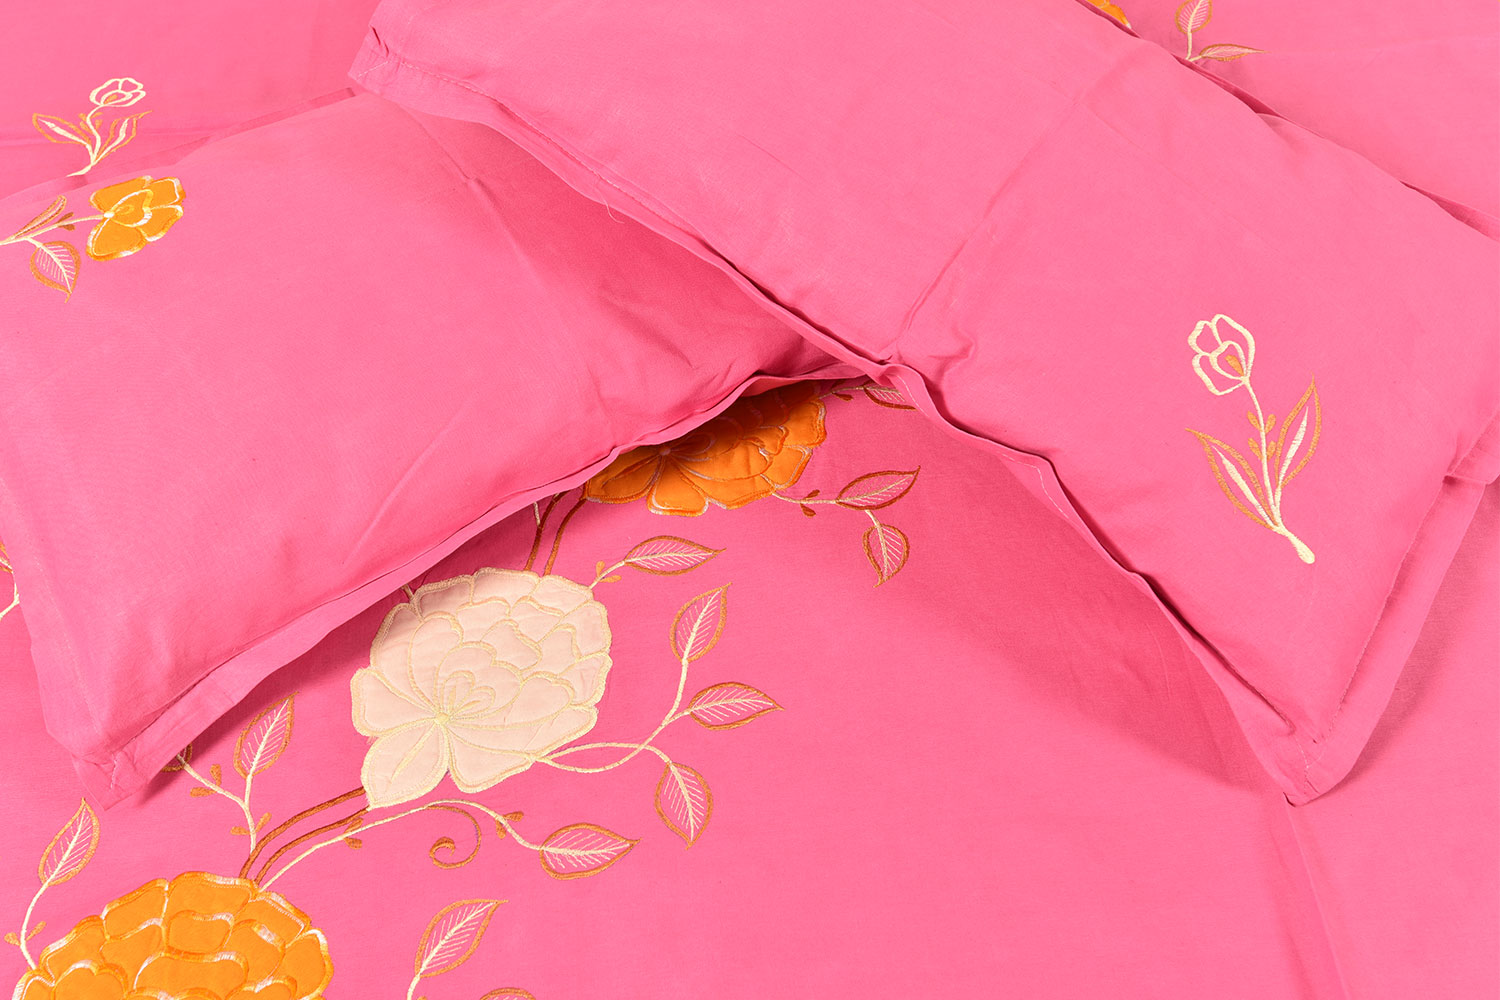 Pink Handmade Bed Sheet Linen with Yellow & White Floral Design Beautiful Decorative Stylish